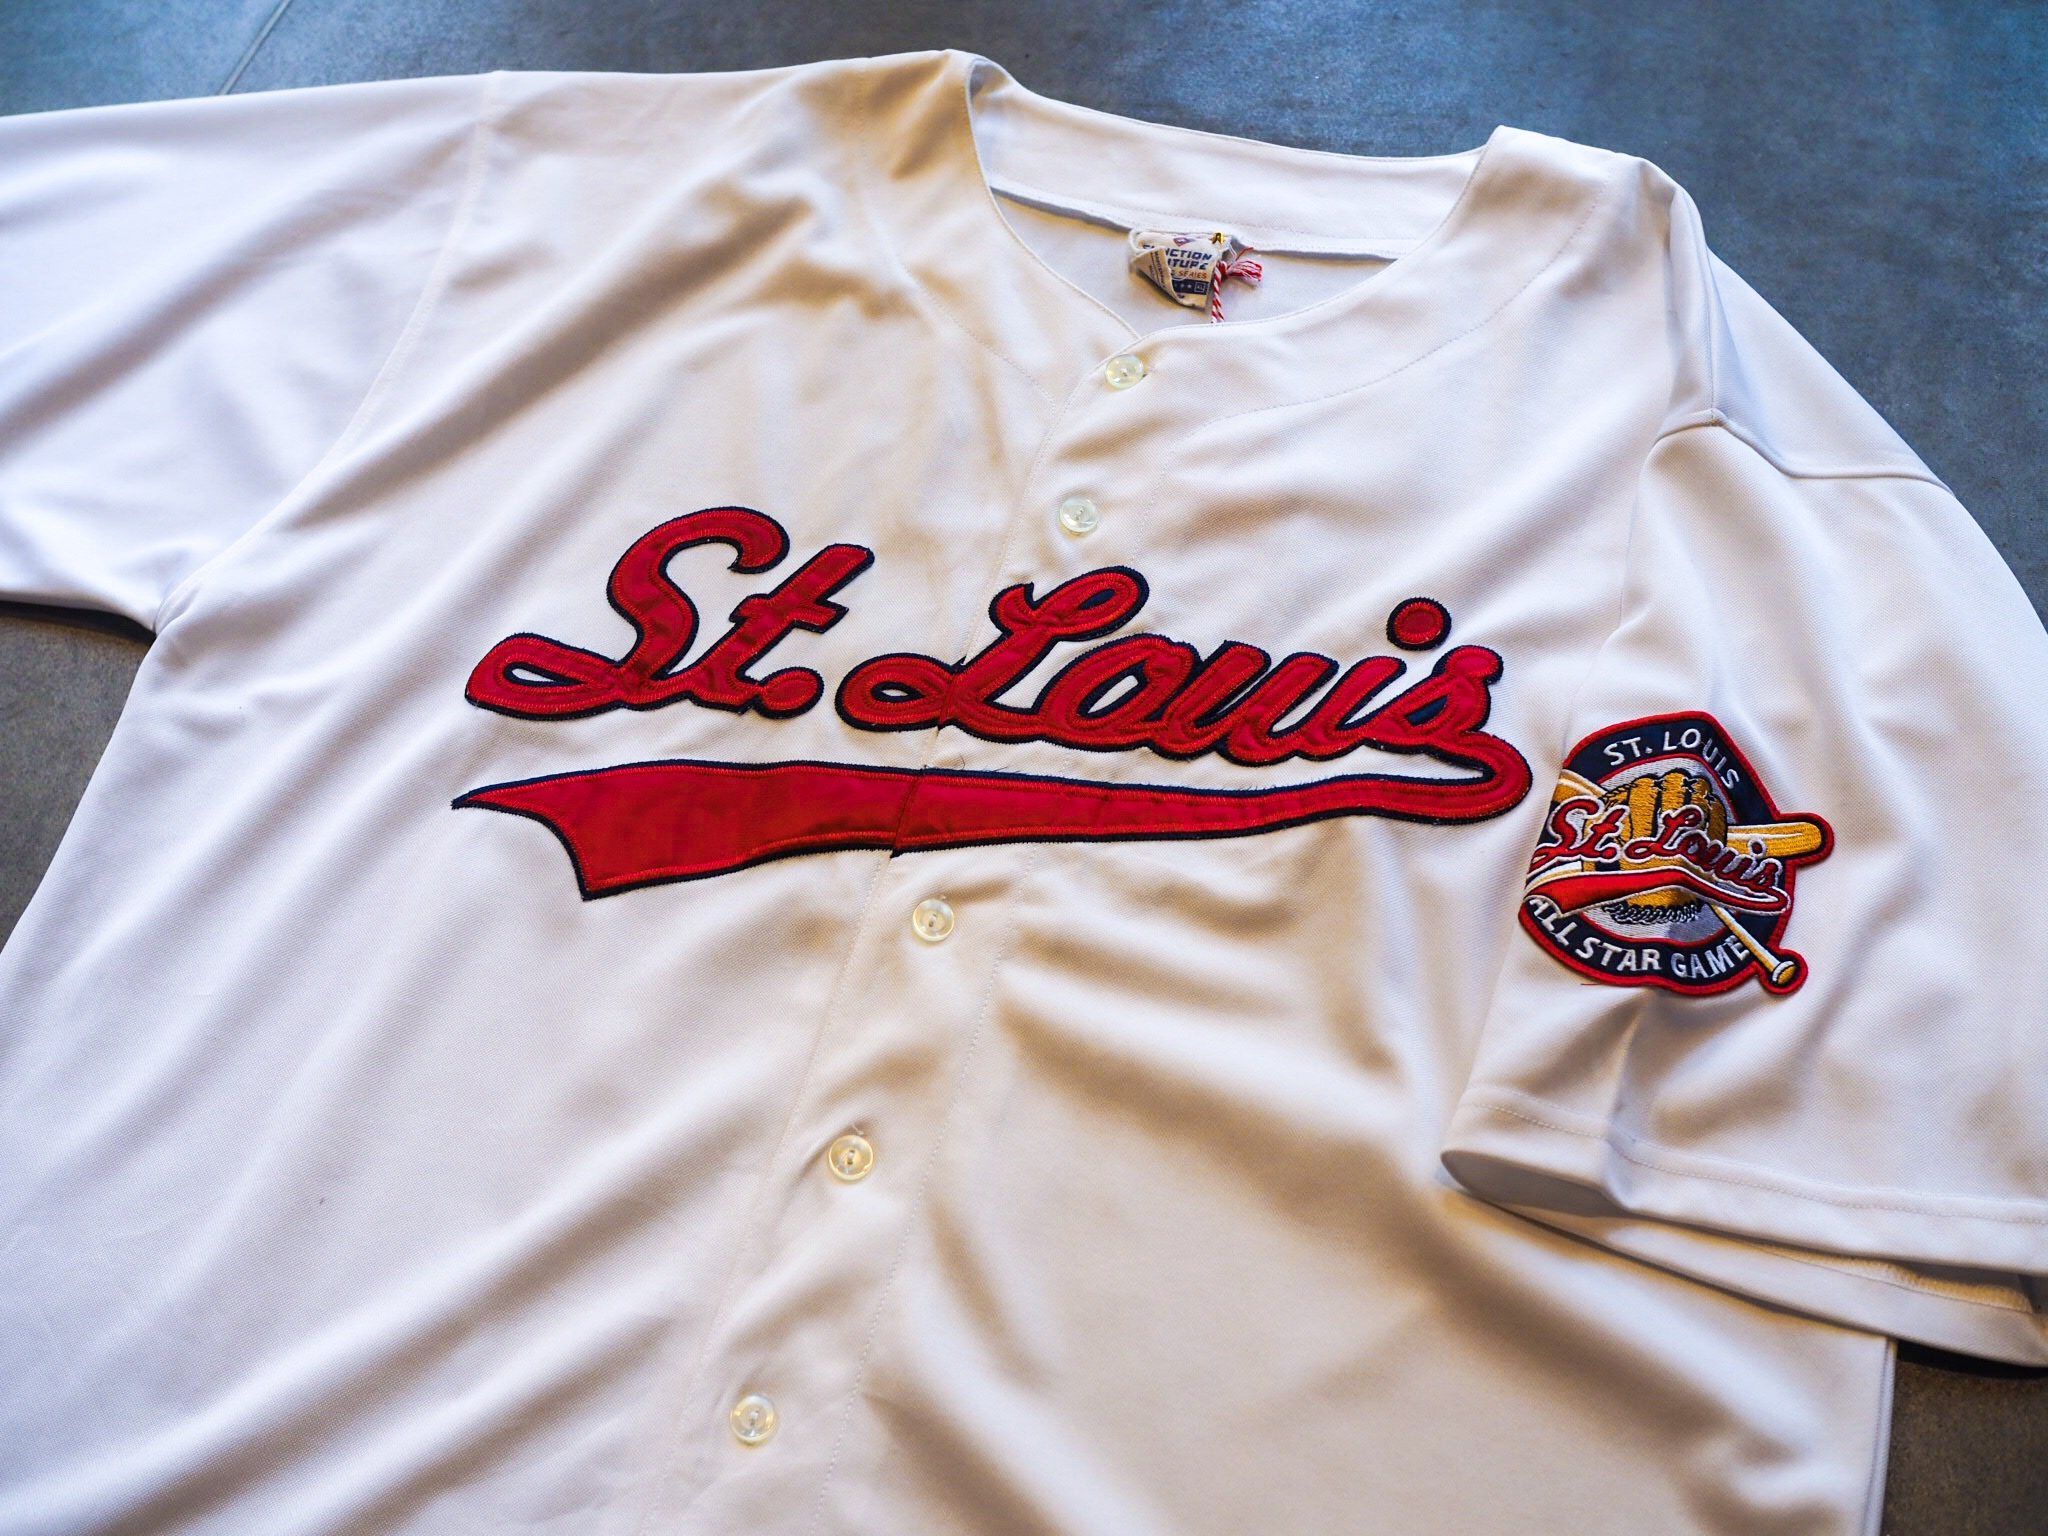 A classic 1980s/90s Baseball Jersey by Function and Future for the St. Louis team. You can't go wrong with that detailing across the chest and on the arm.